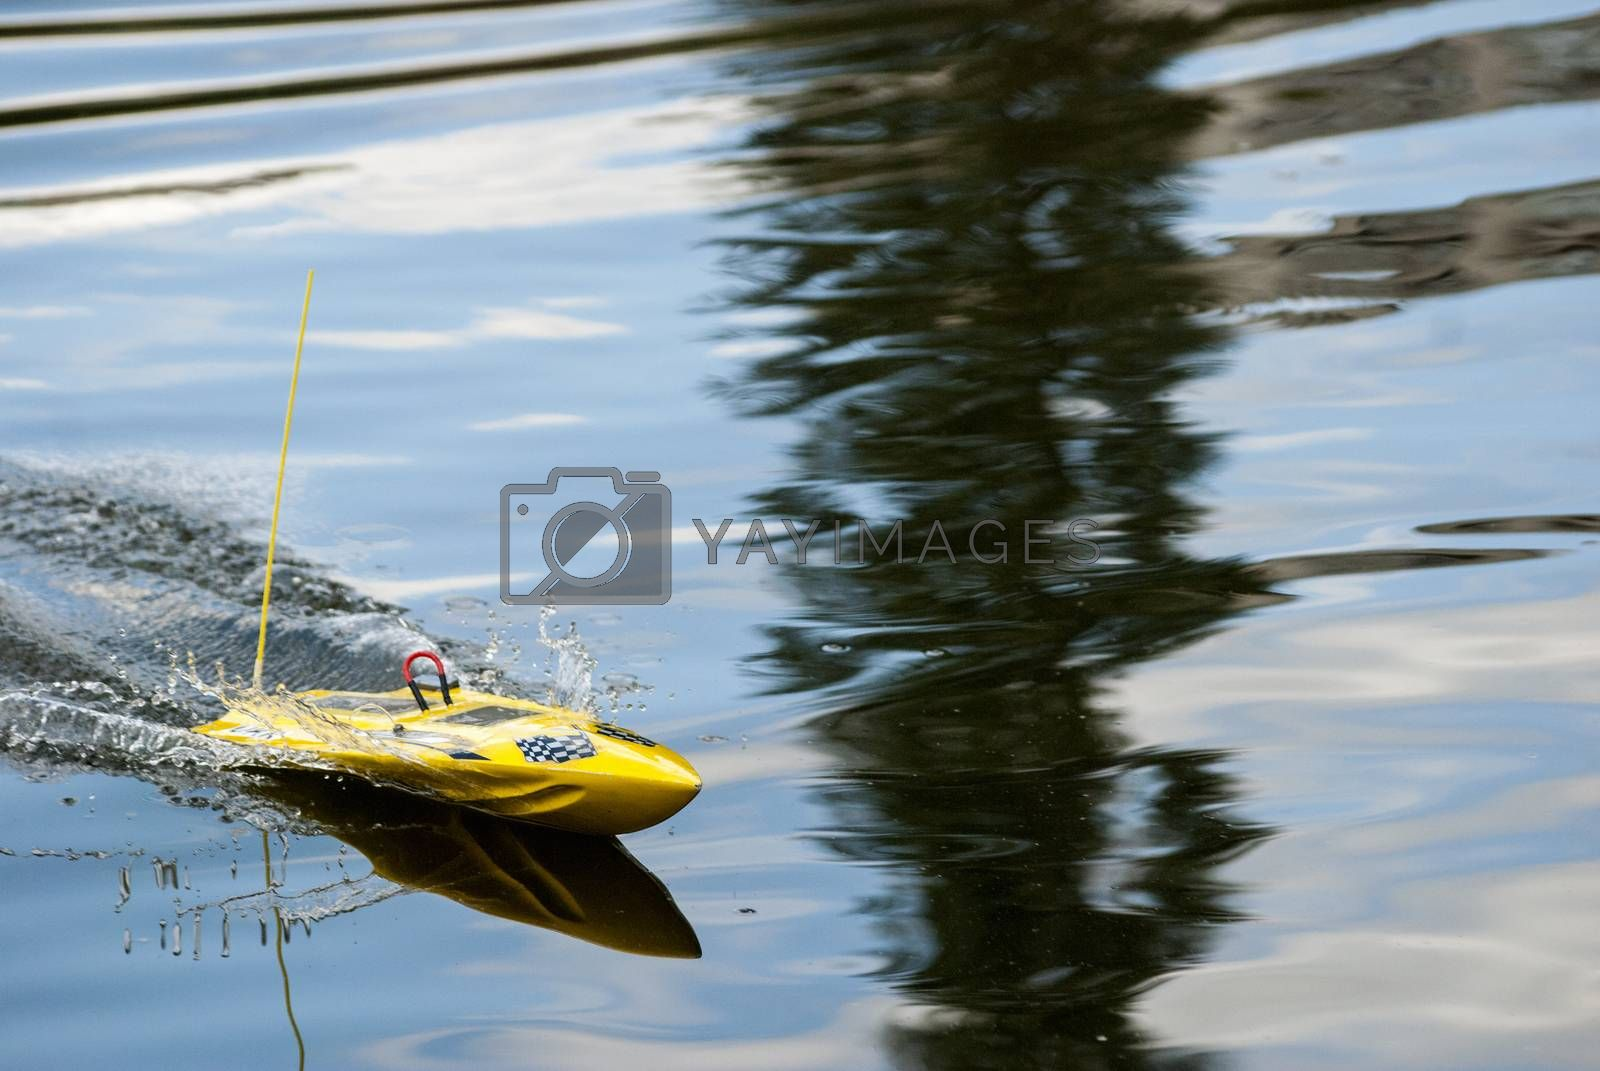 Royalty free image of radio-controlled boat launch by Morfey713